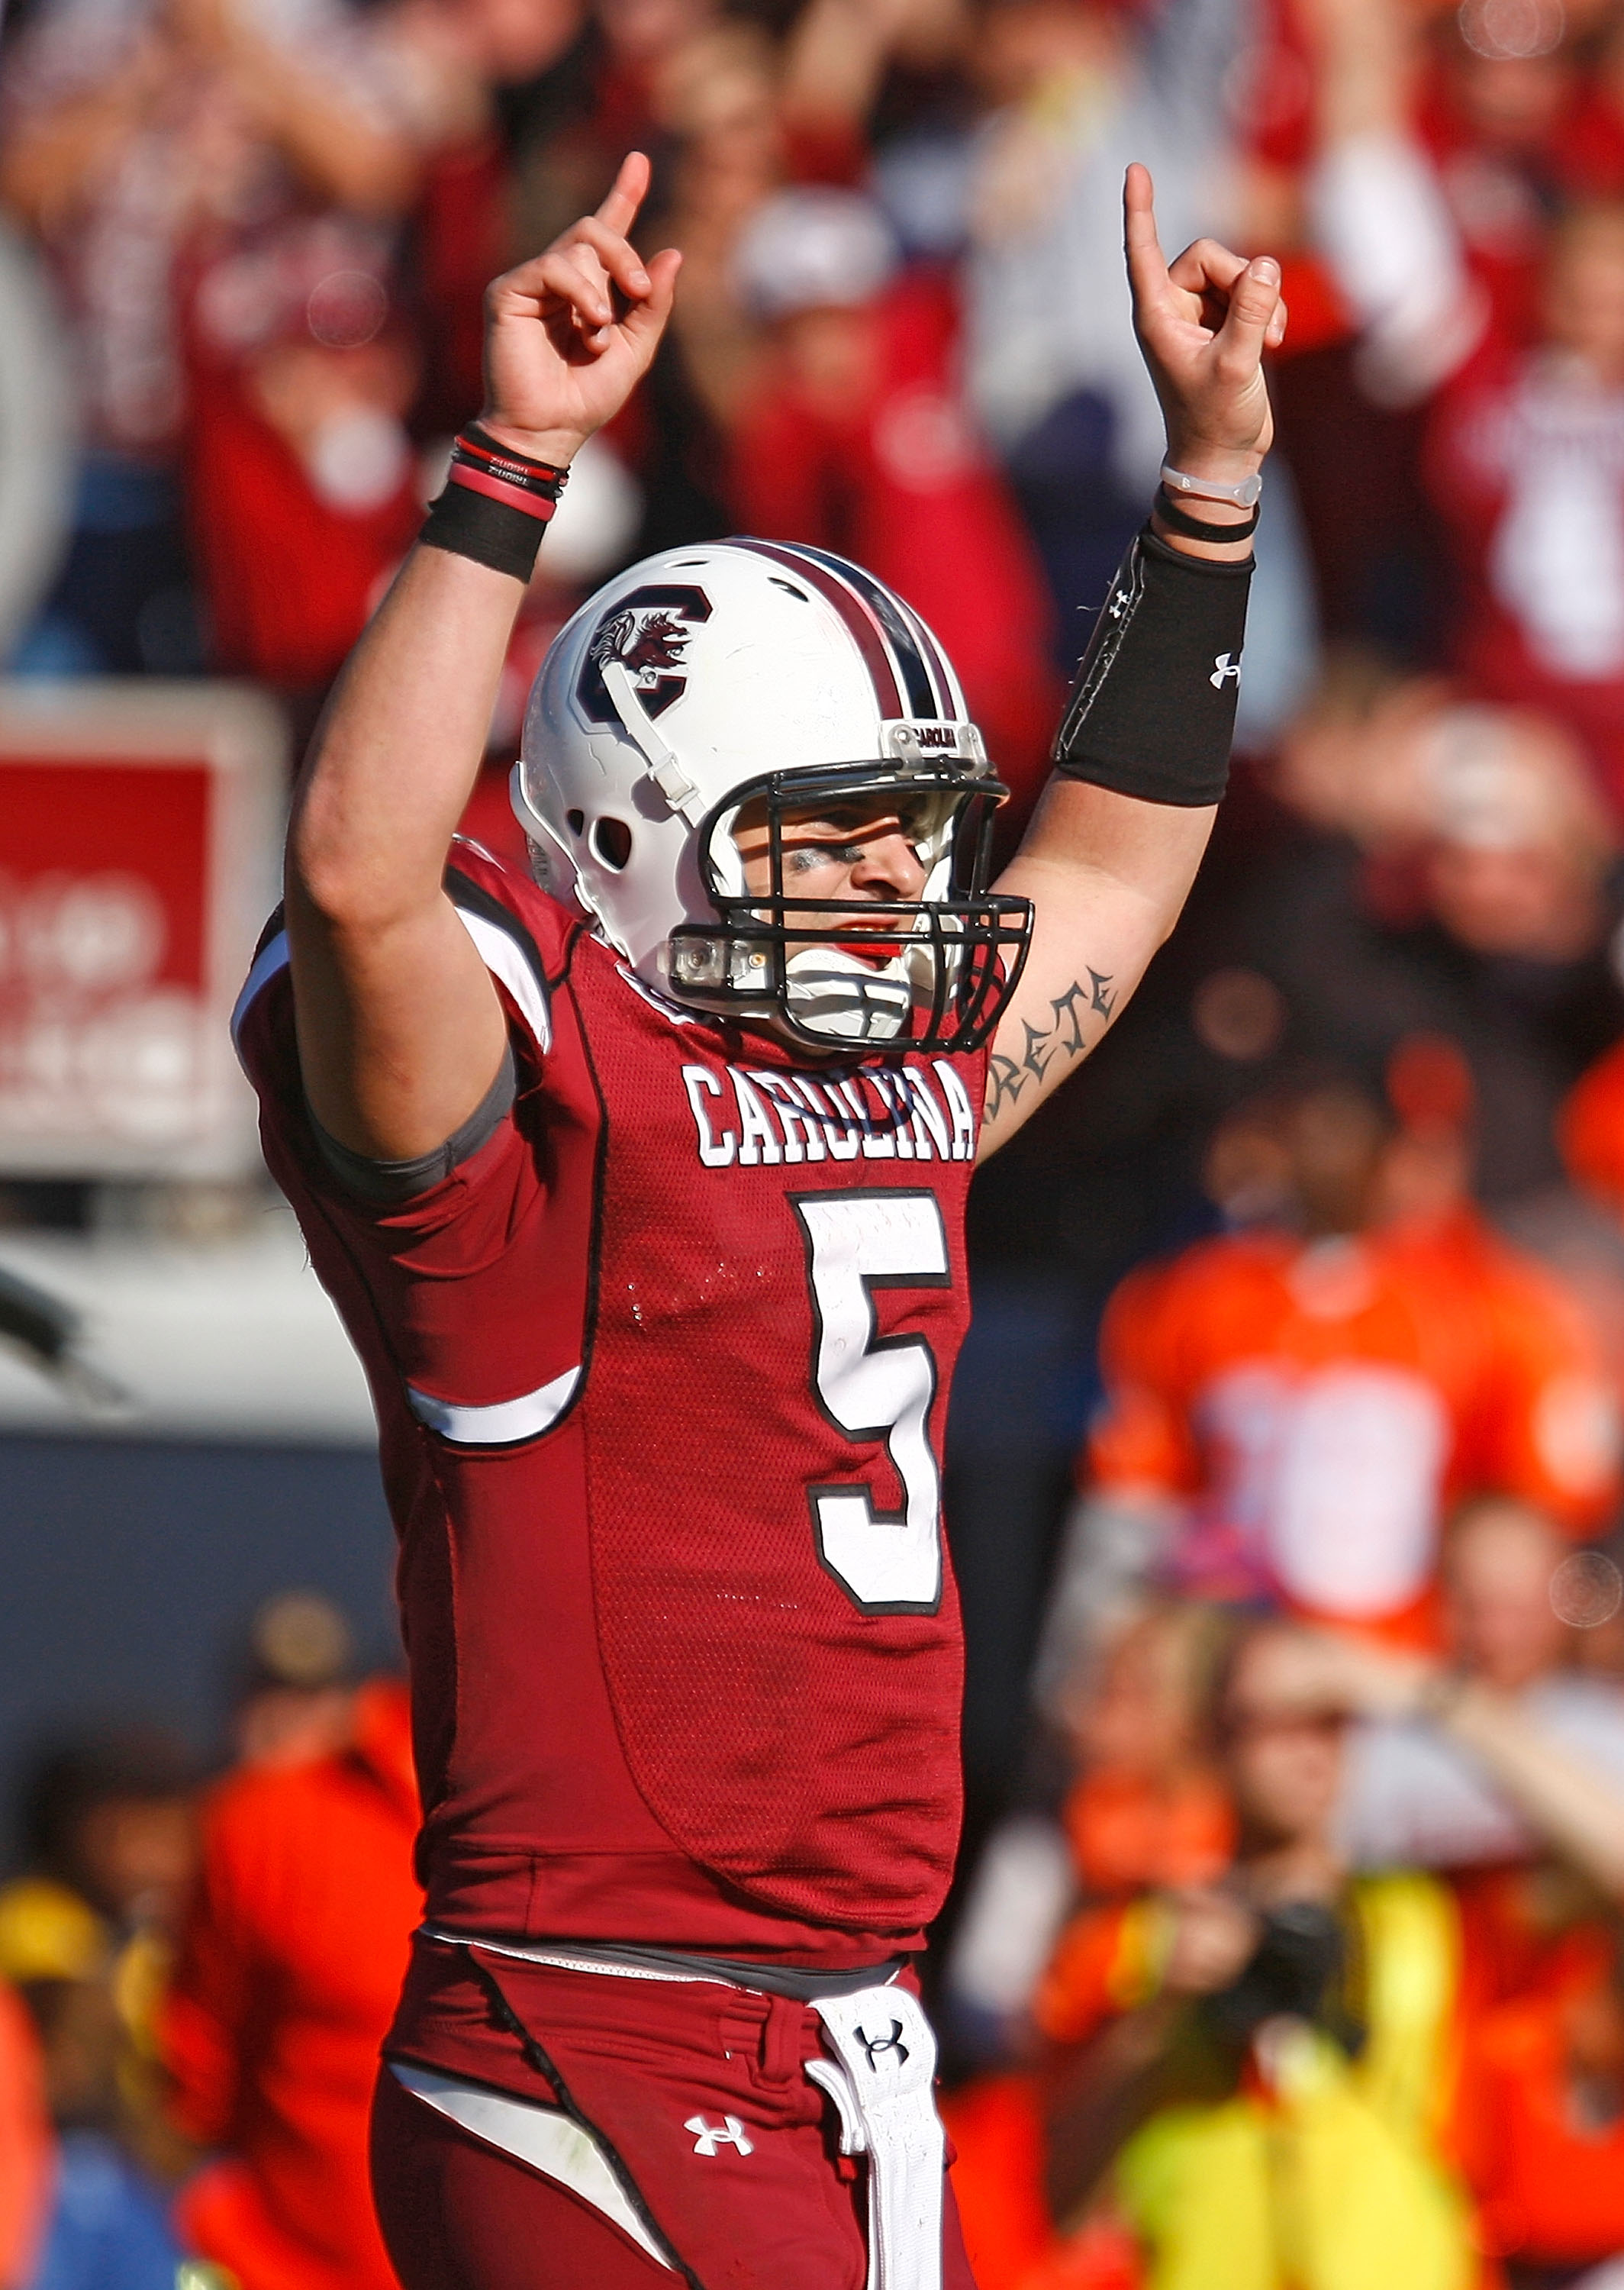 COLUMBIA, SC - NOVEMBER 28:  Stephen Garcia #5 of the South Carolina Gamecocks celebrates a second half touchdown against the Clemson Tigers at Williams-Brice Stadium on November 28, 2009 in Columbia, South Carolina.  (Photo by Scott Halleran/Getty Images